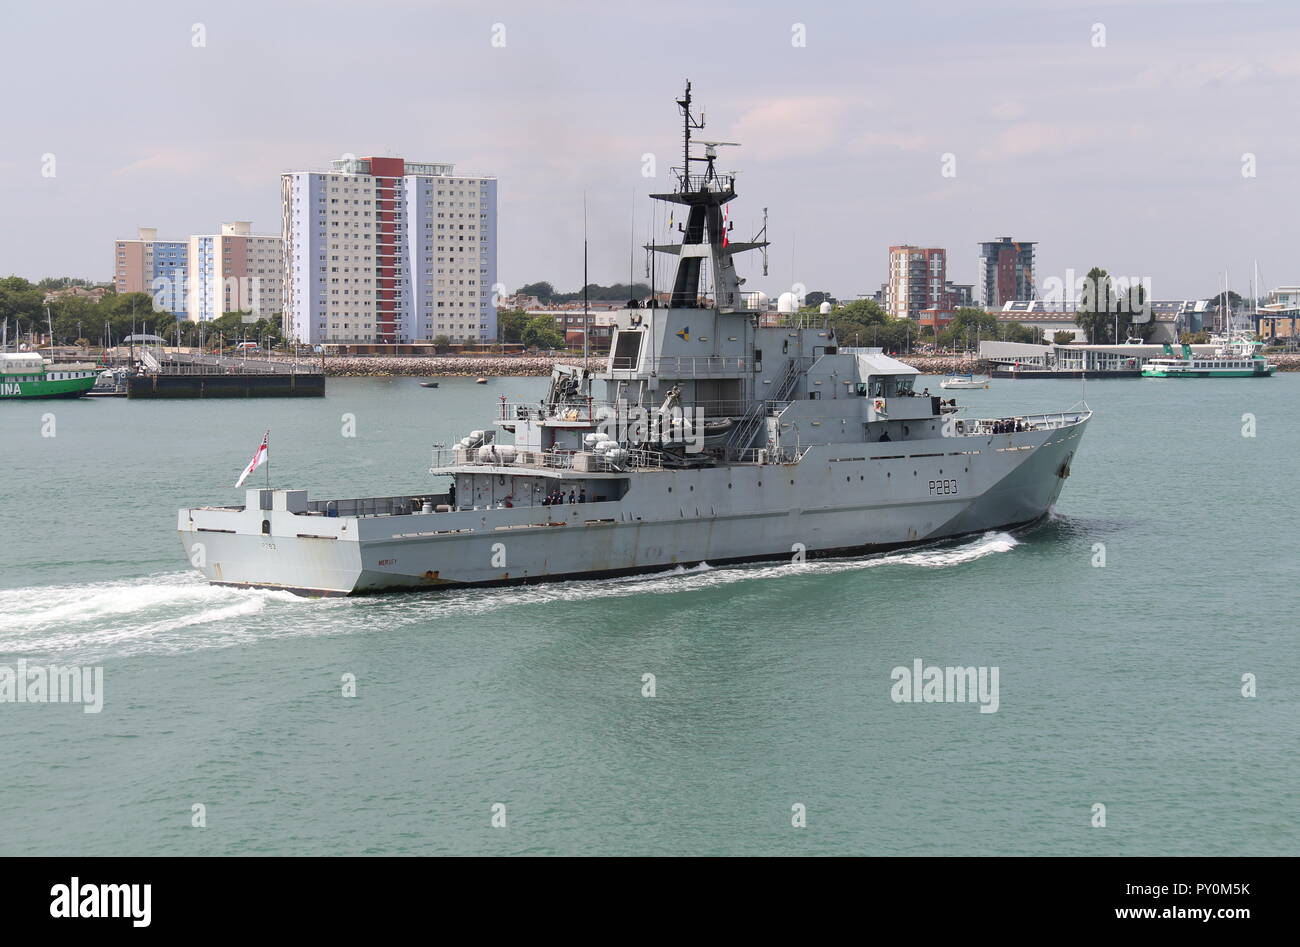 The Royal Navy off-shore patrol vessel HMS Mersey arriving at her home port of Portsmouth, UK on 24th July 2018. - Stock Image